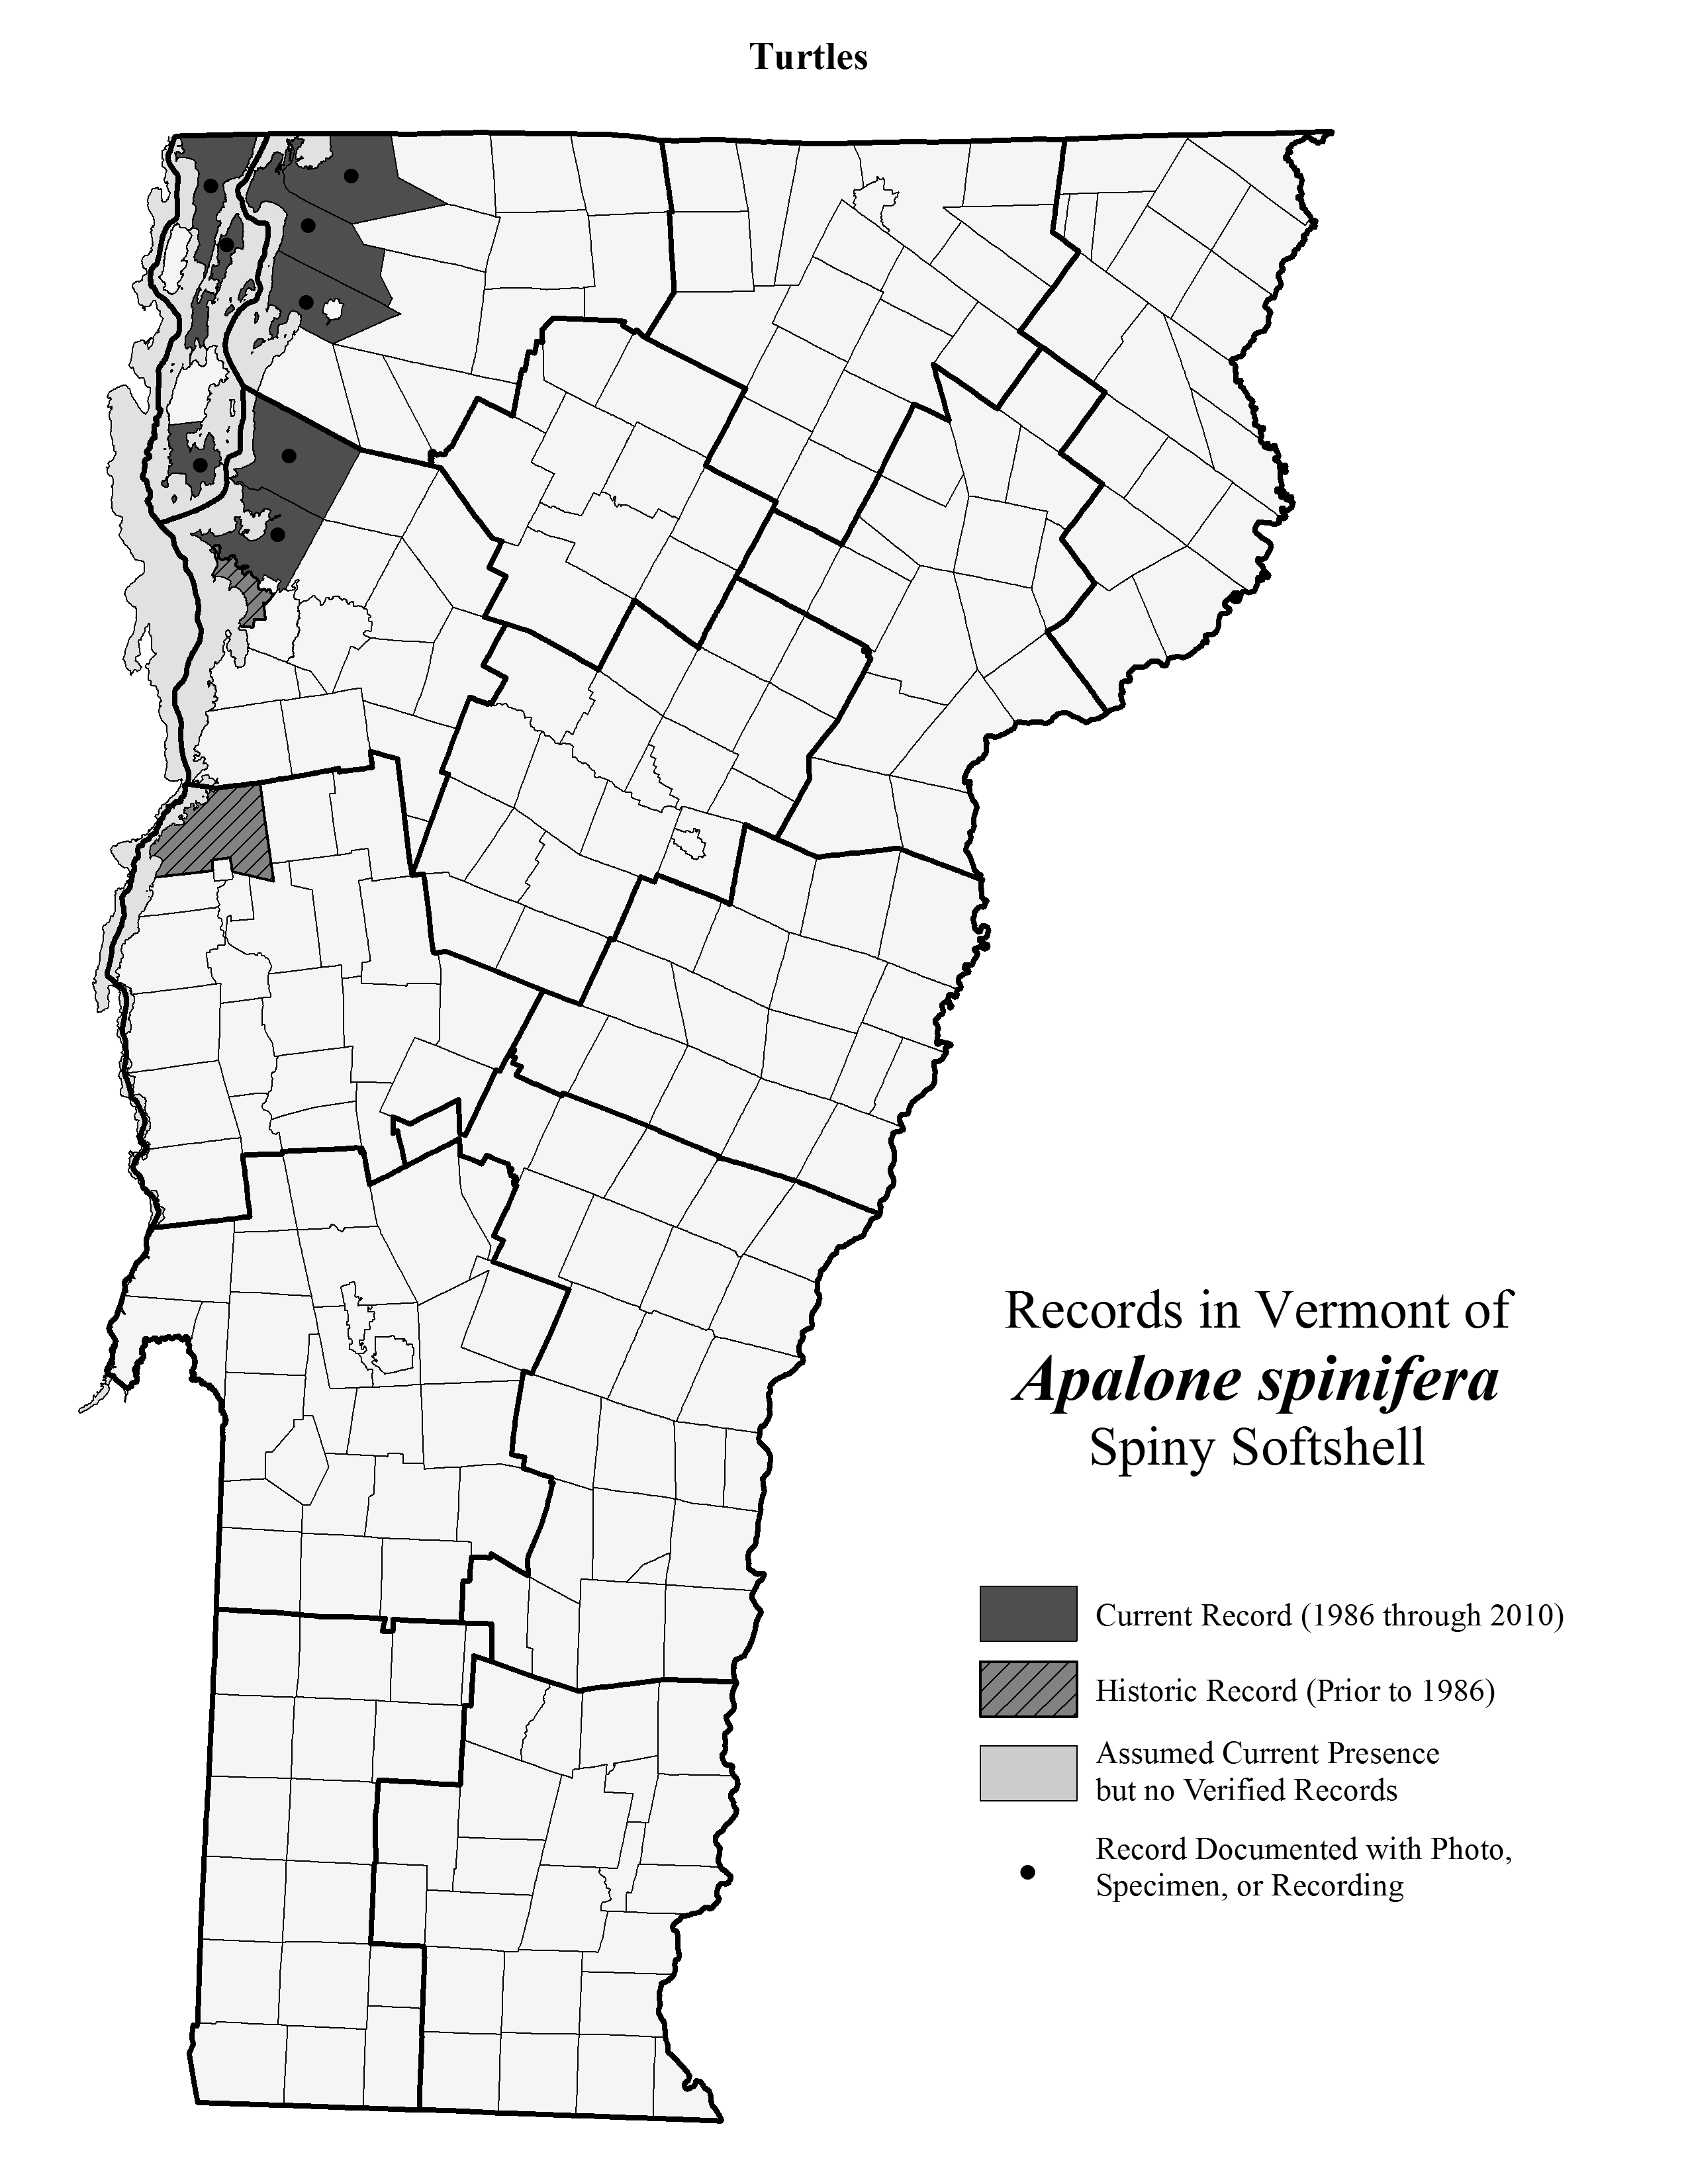 The Atlas - Map of vt towns